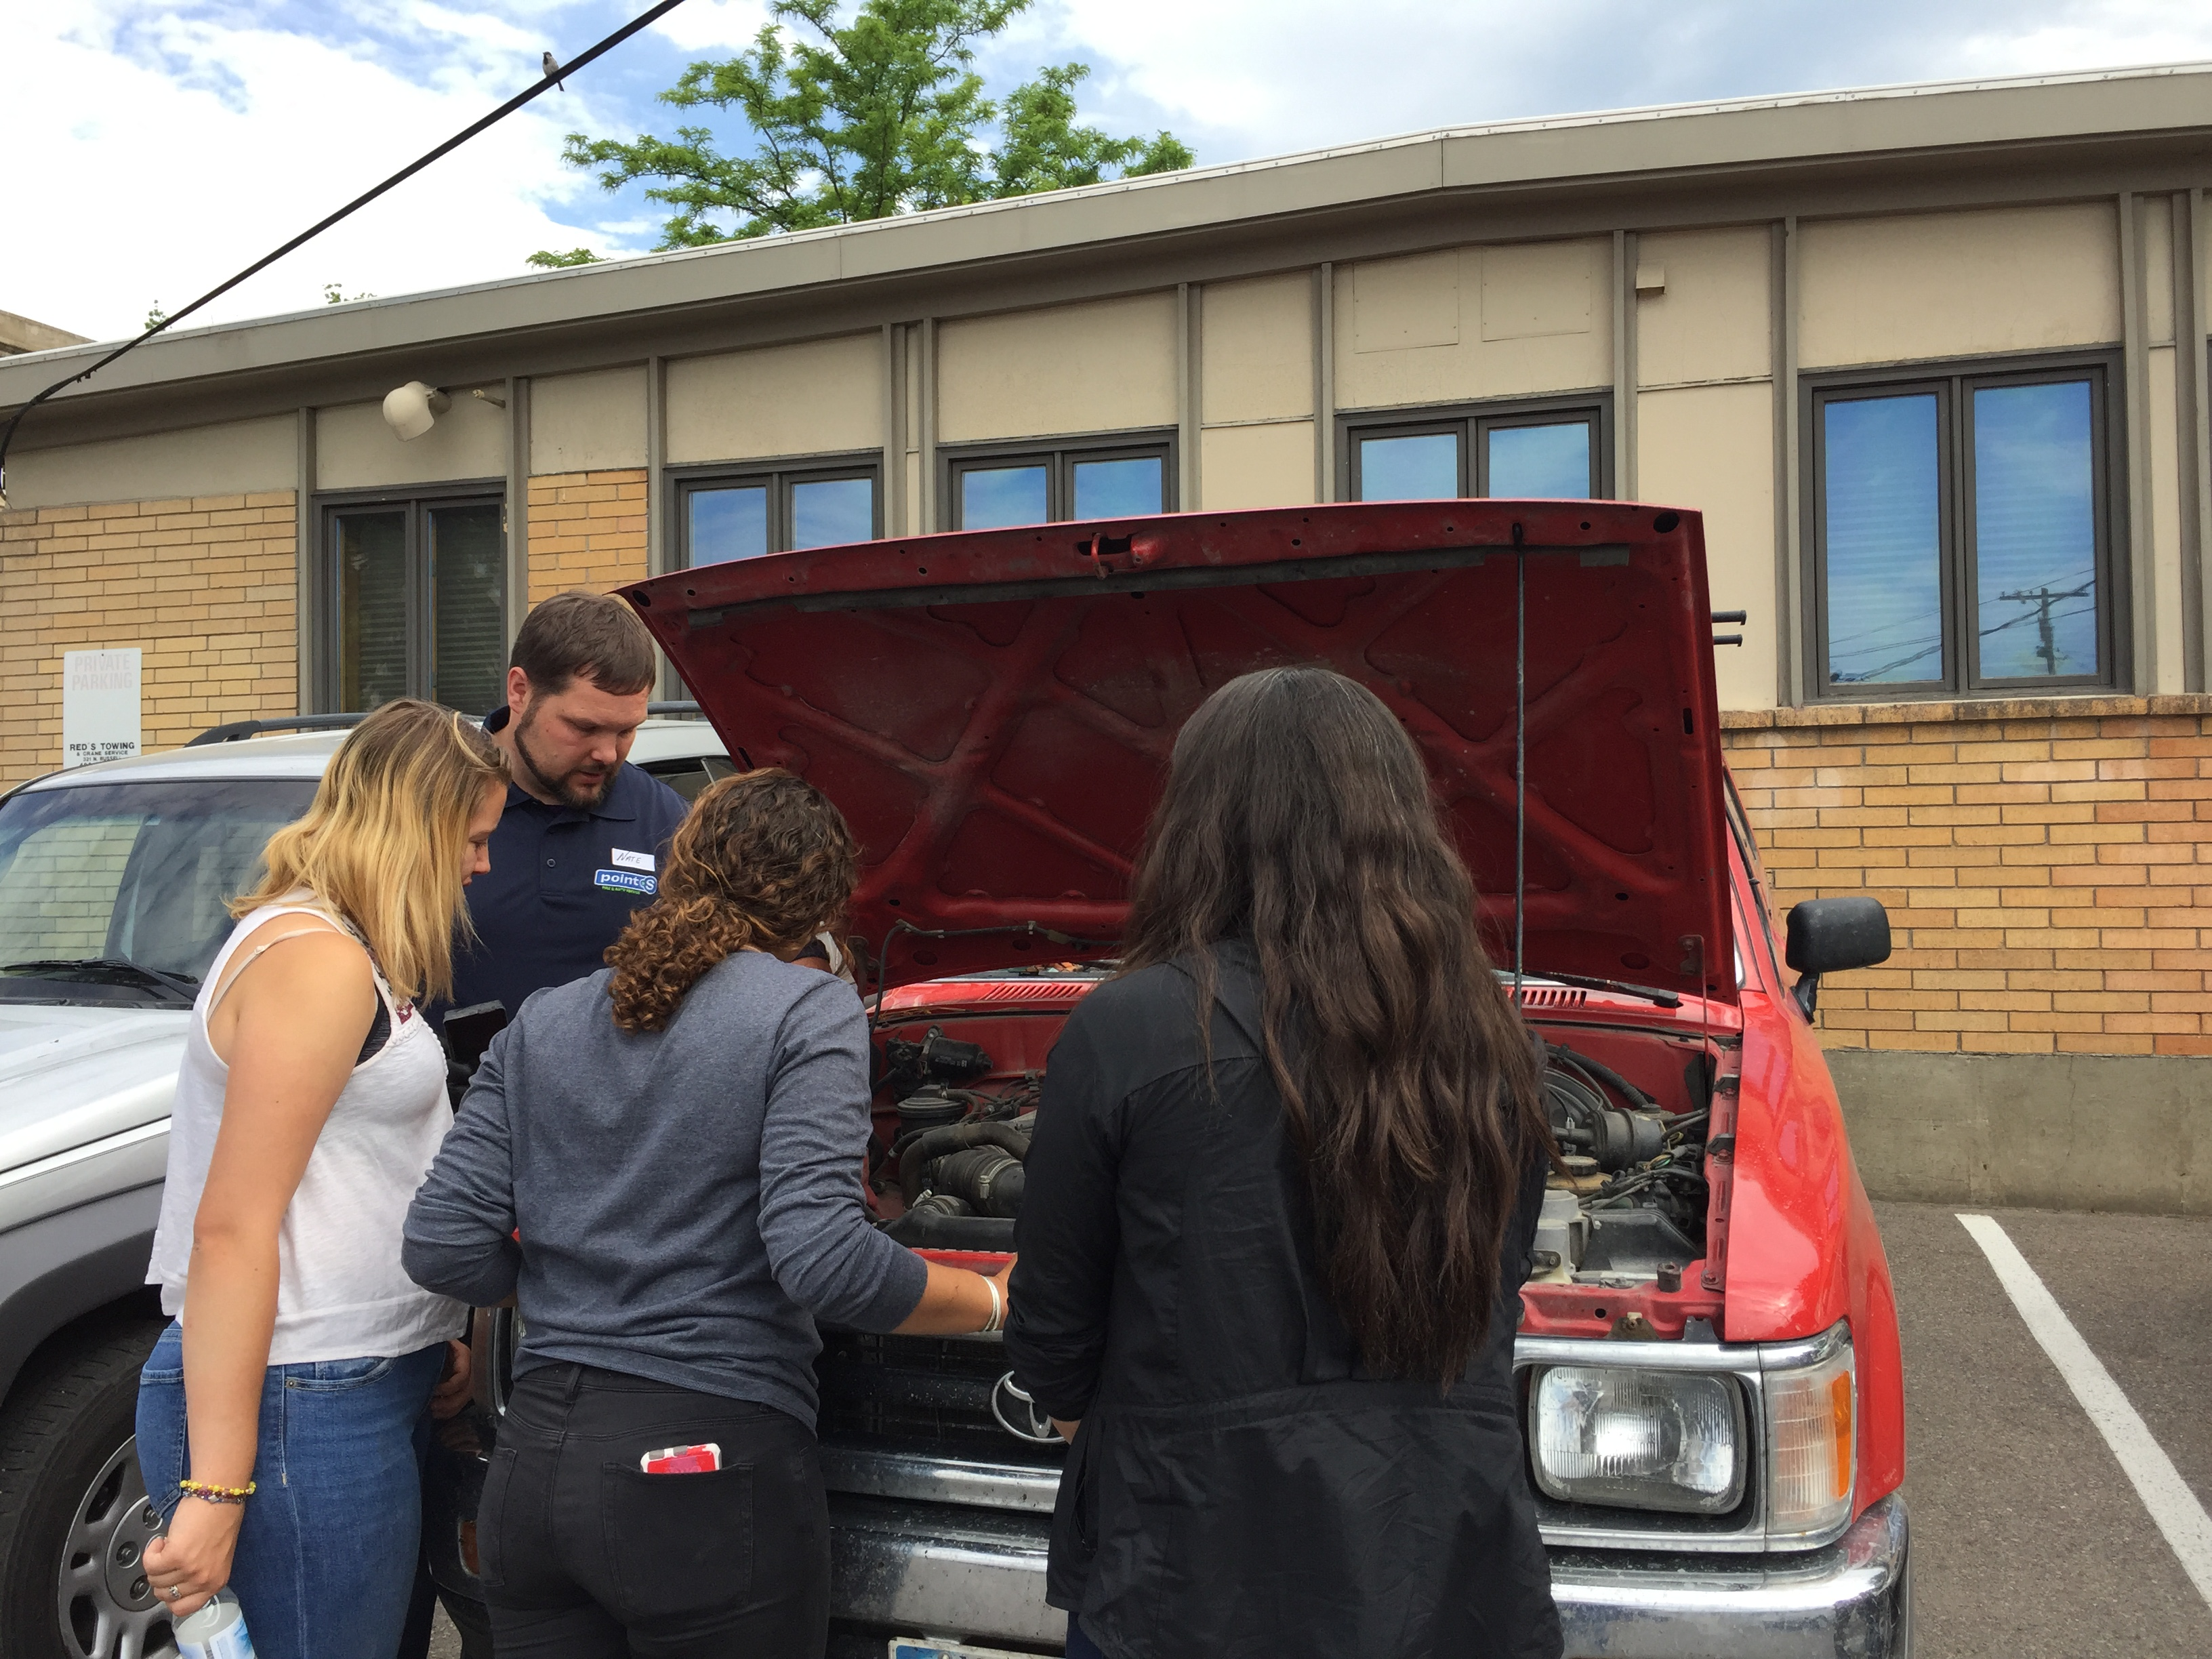 Roemer's Point S Hosts a Car Care Clinic for Women